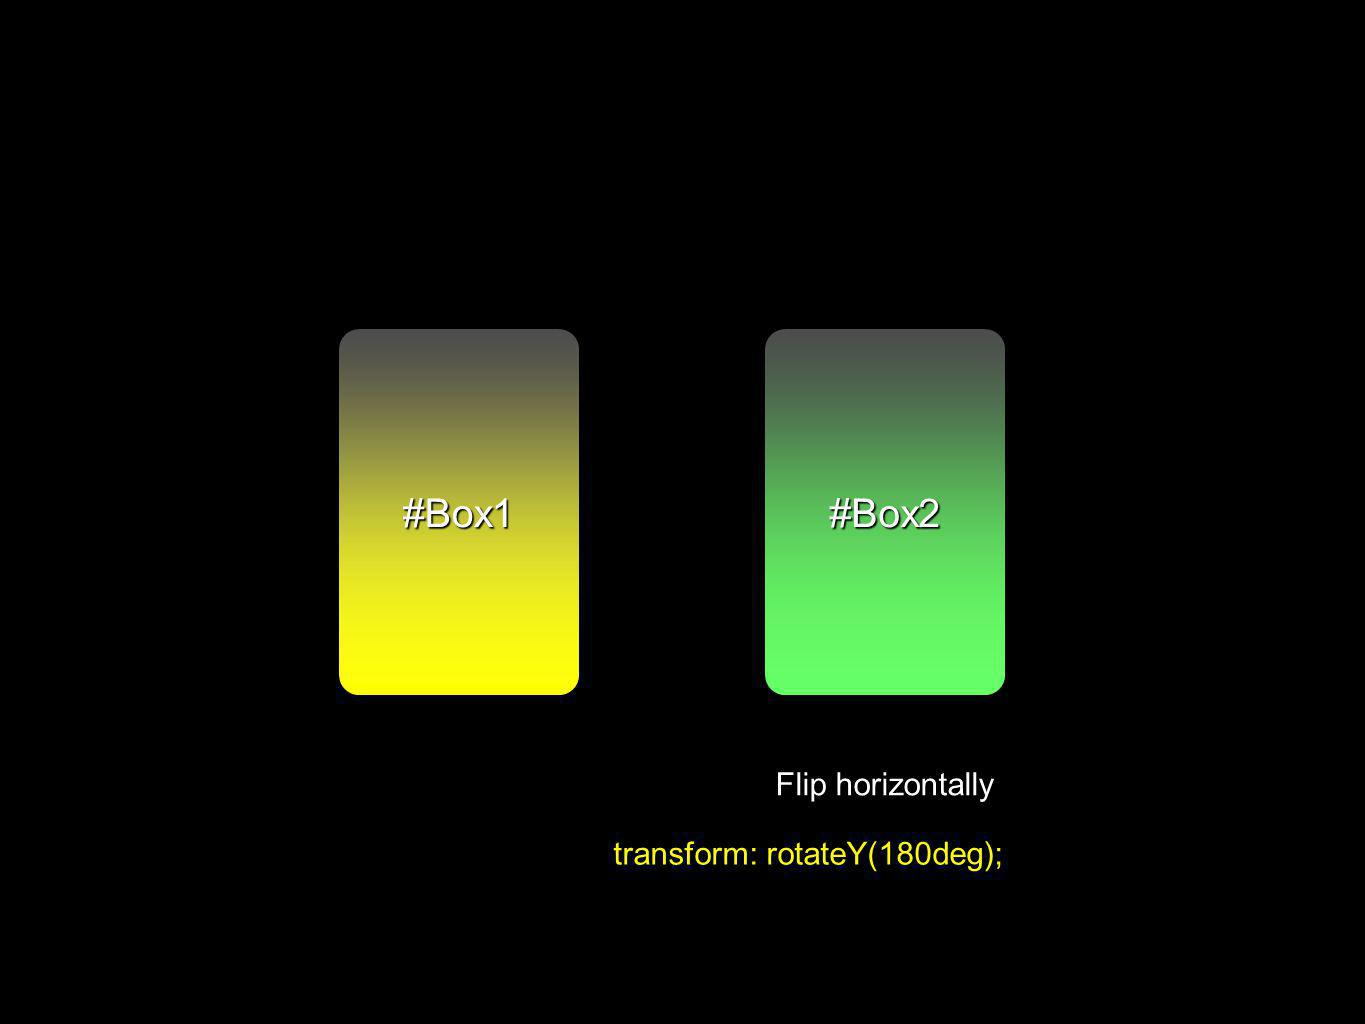 #Box2#Box1 Flip horizontally transform: rotateY(180deg);